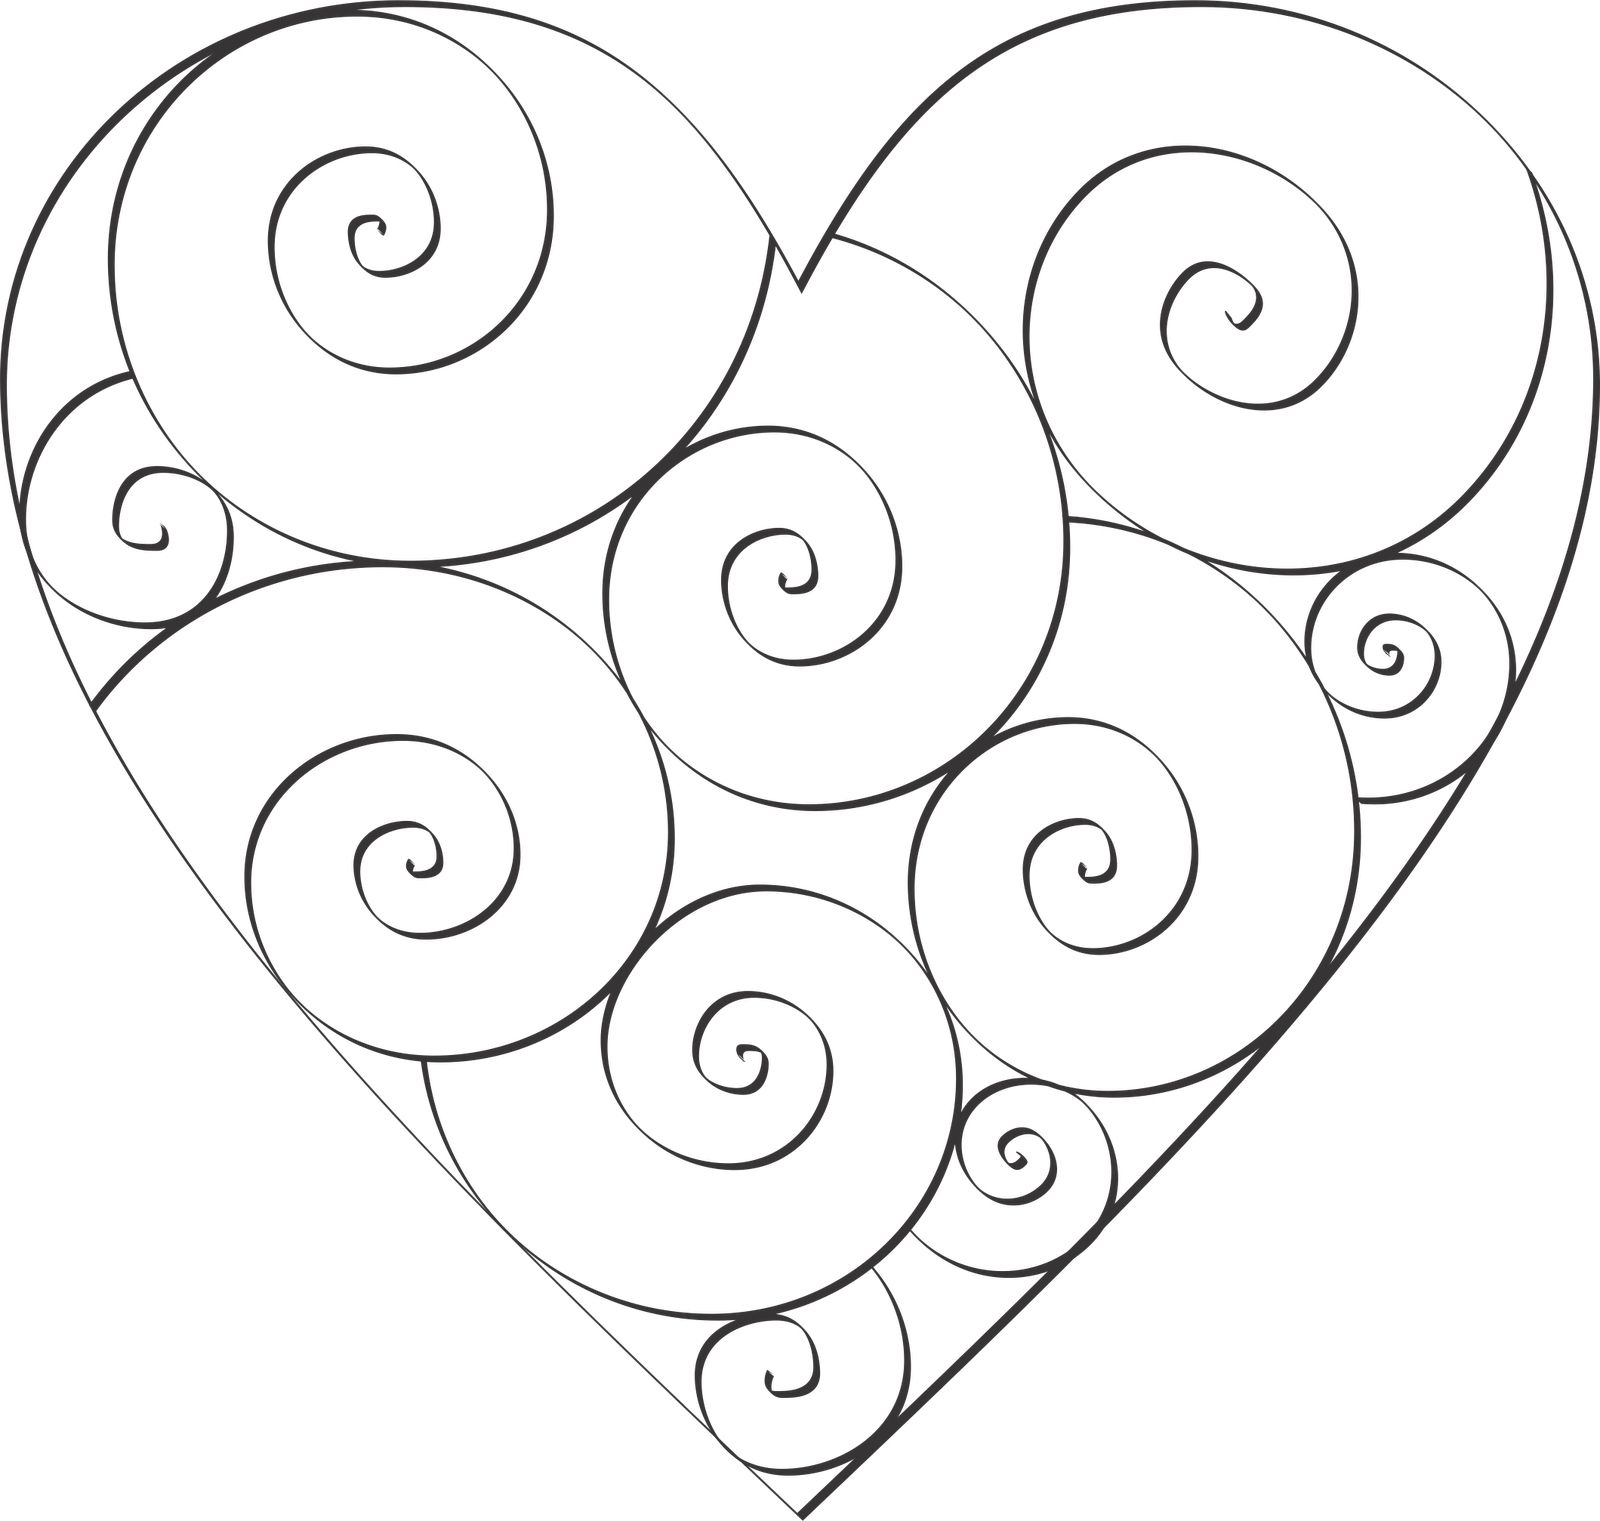 Imagen de http://www.dibujalia.com/data/media/63/love-heart-pictures-to-colour-in.png.